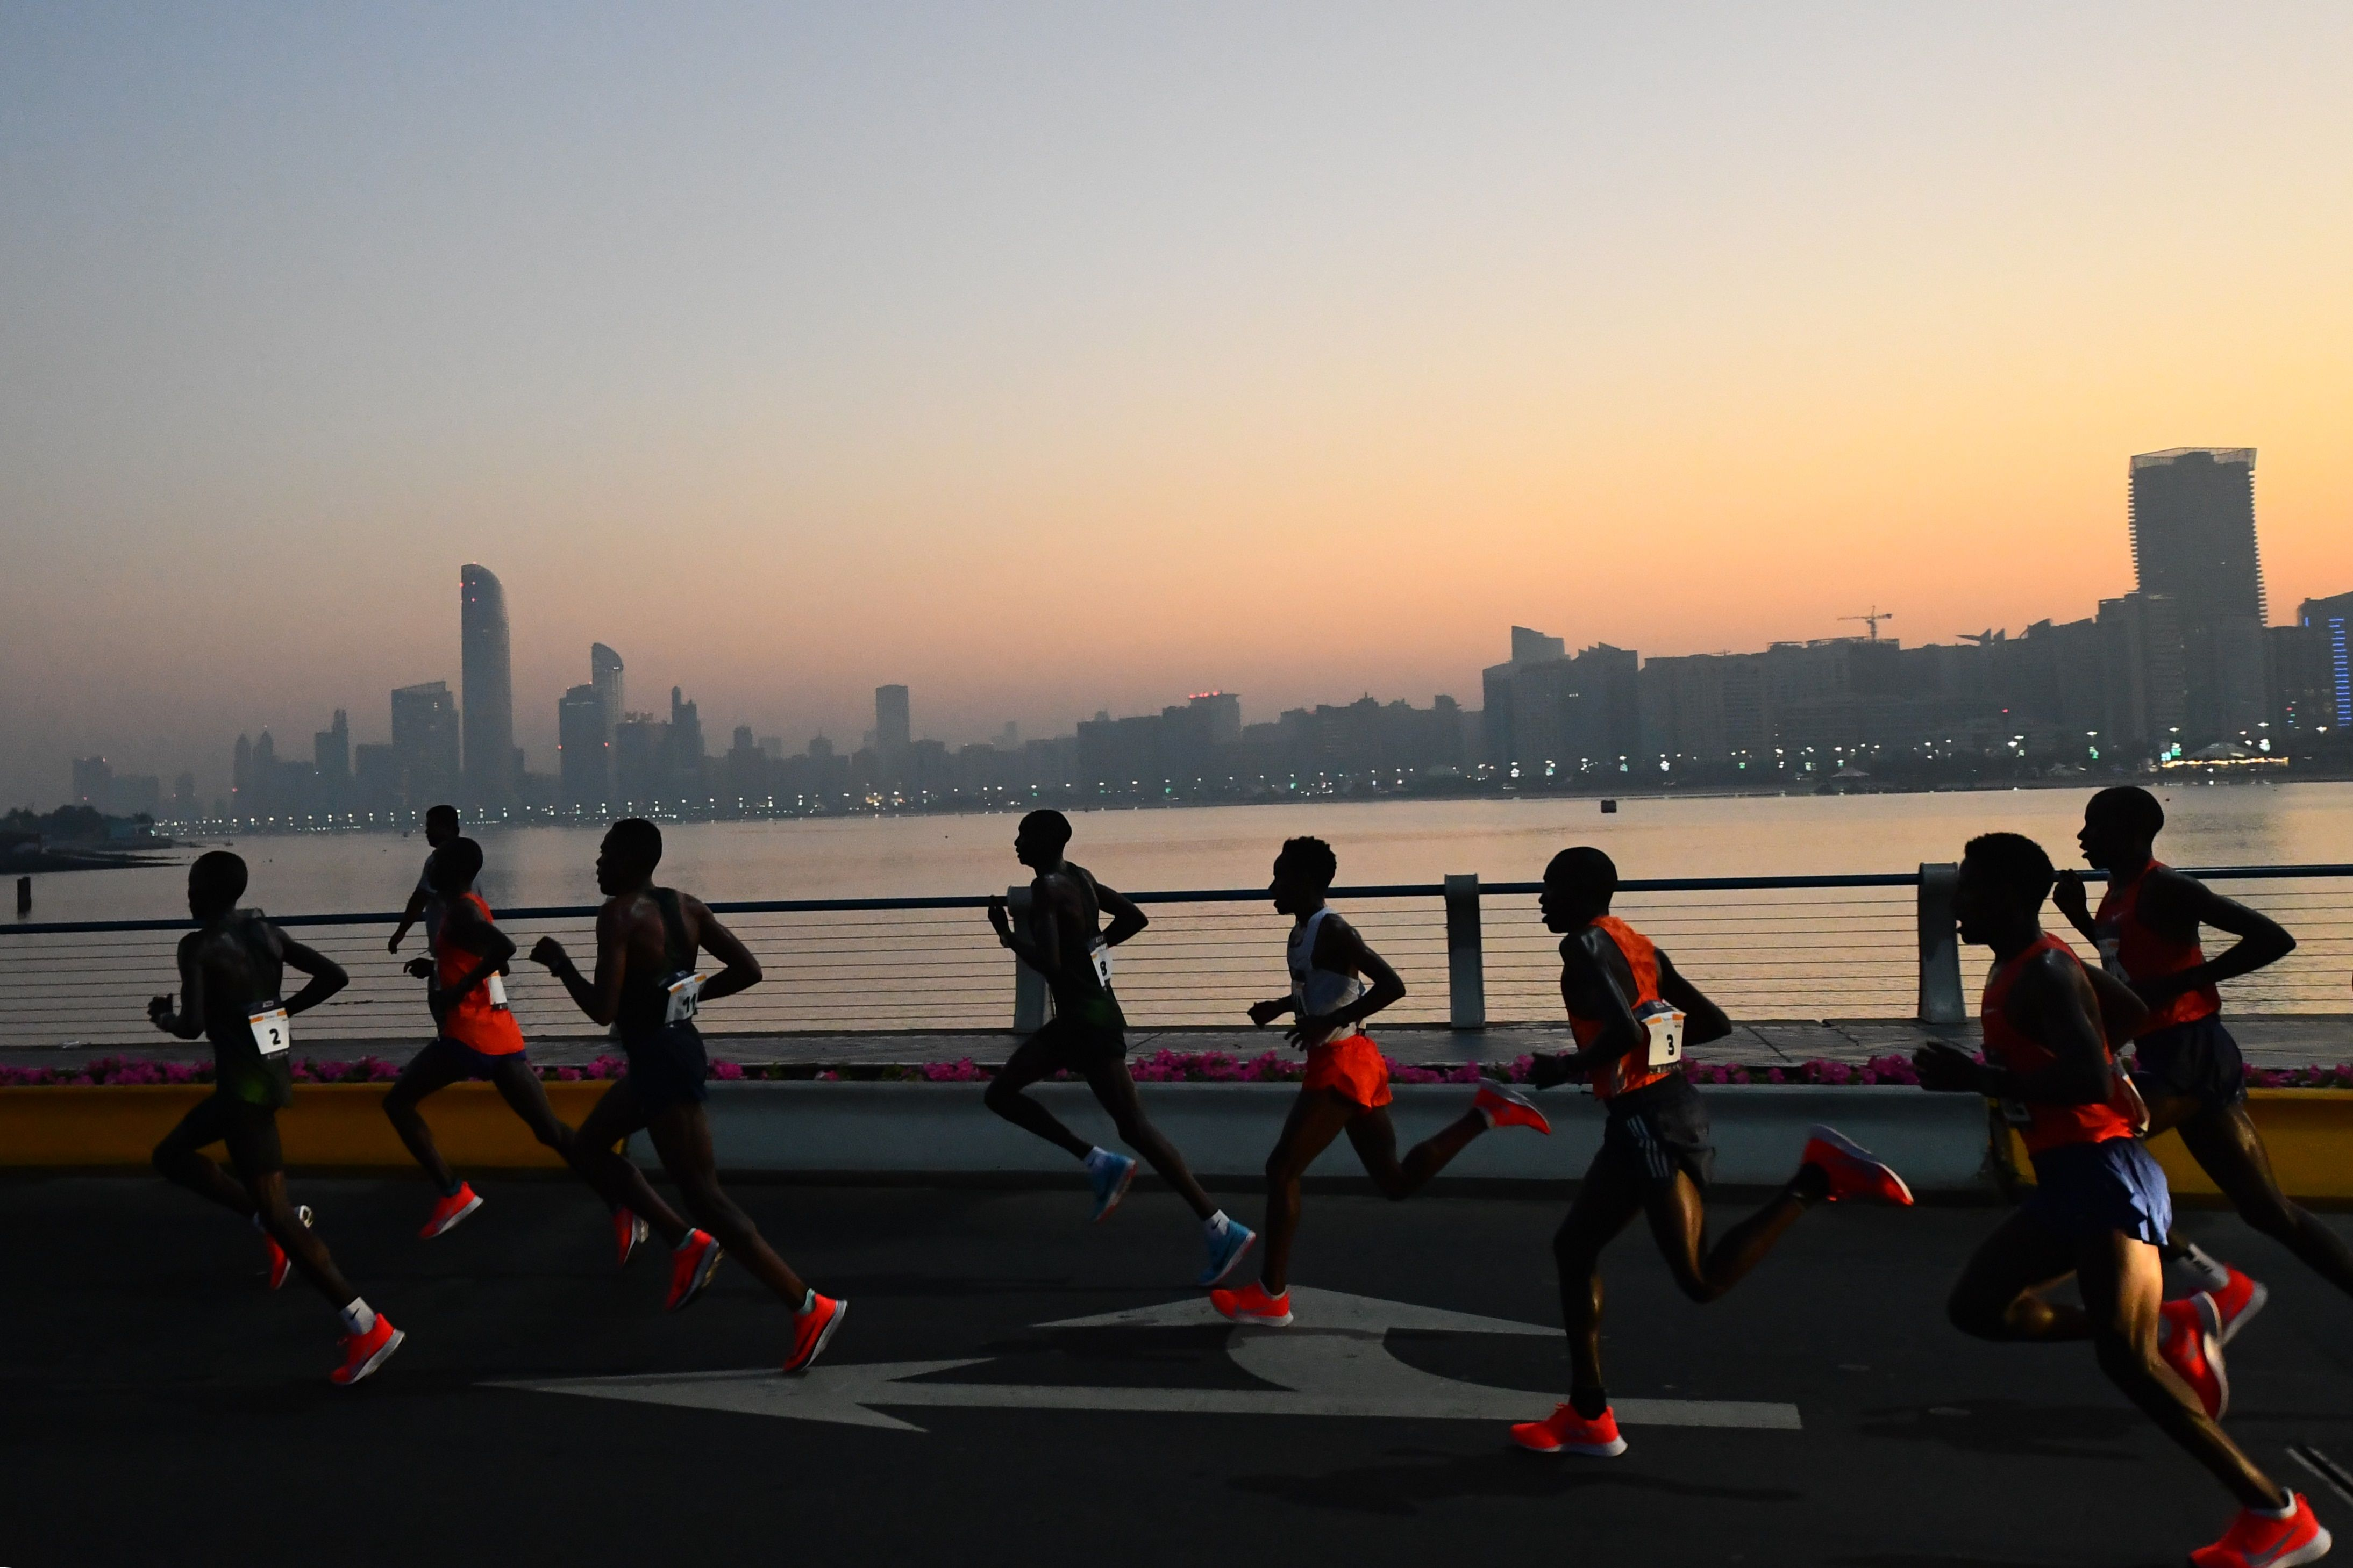 Pacer was meant to drop out at 30K, but goes on to wins Abu Dhabi Marathon